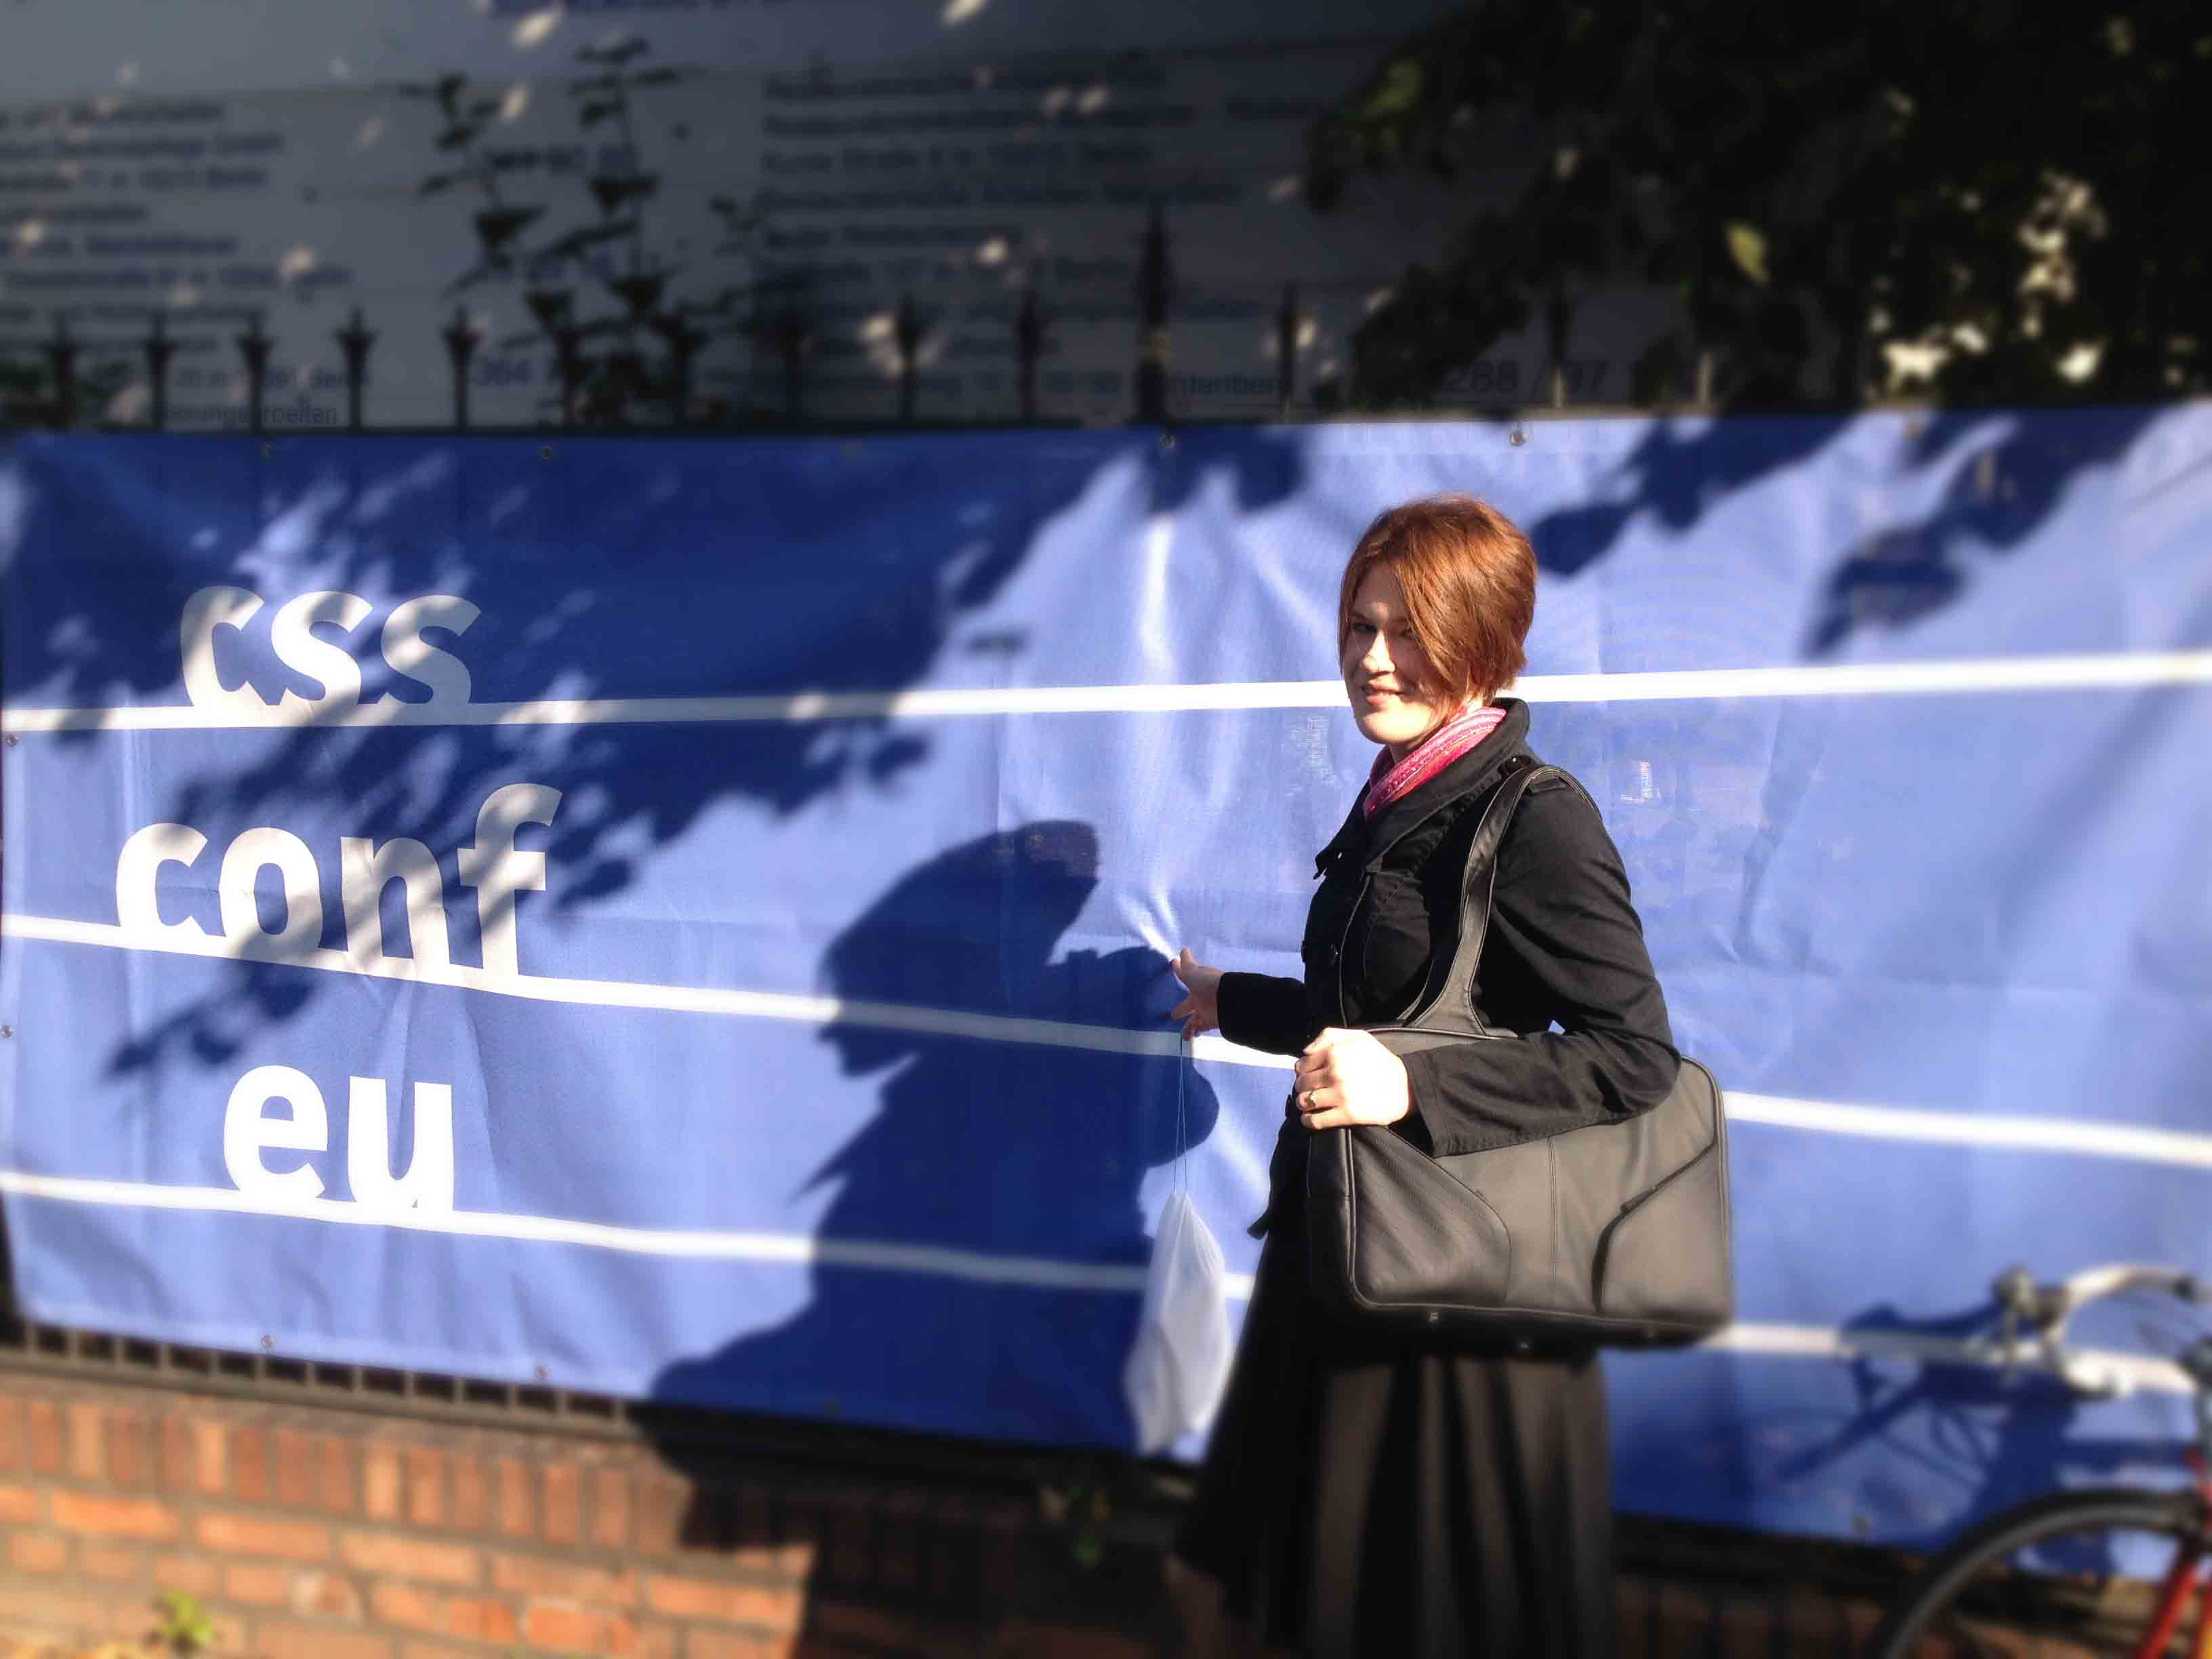 Me in front of the CSS Conf EU banner on a sunny Berlin day, dappled in tree shade.